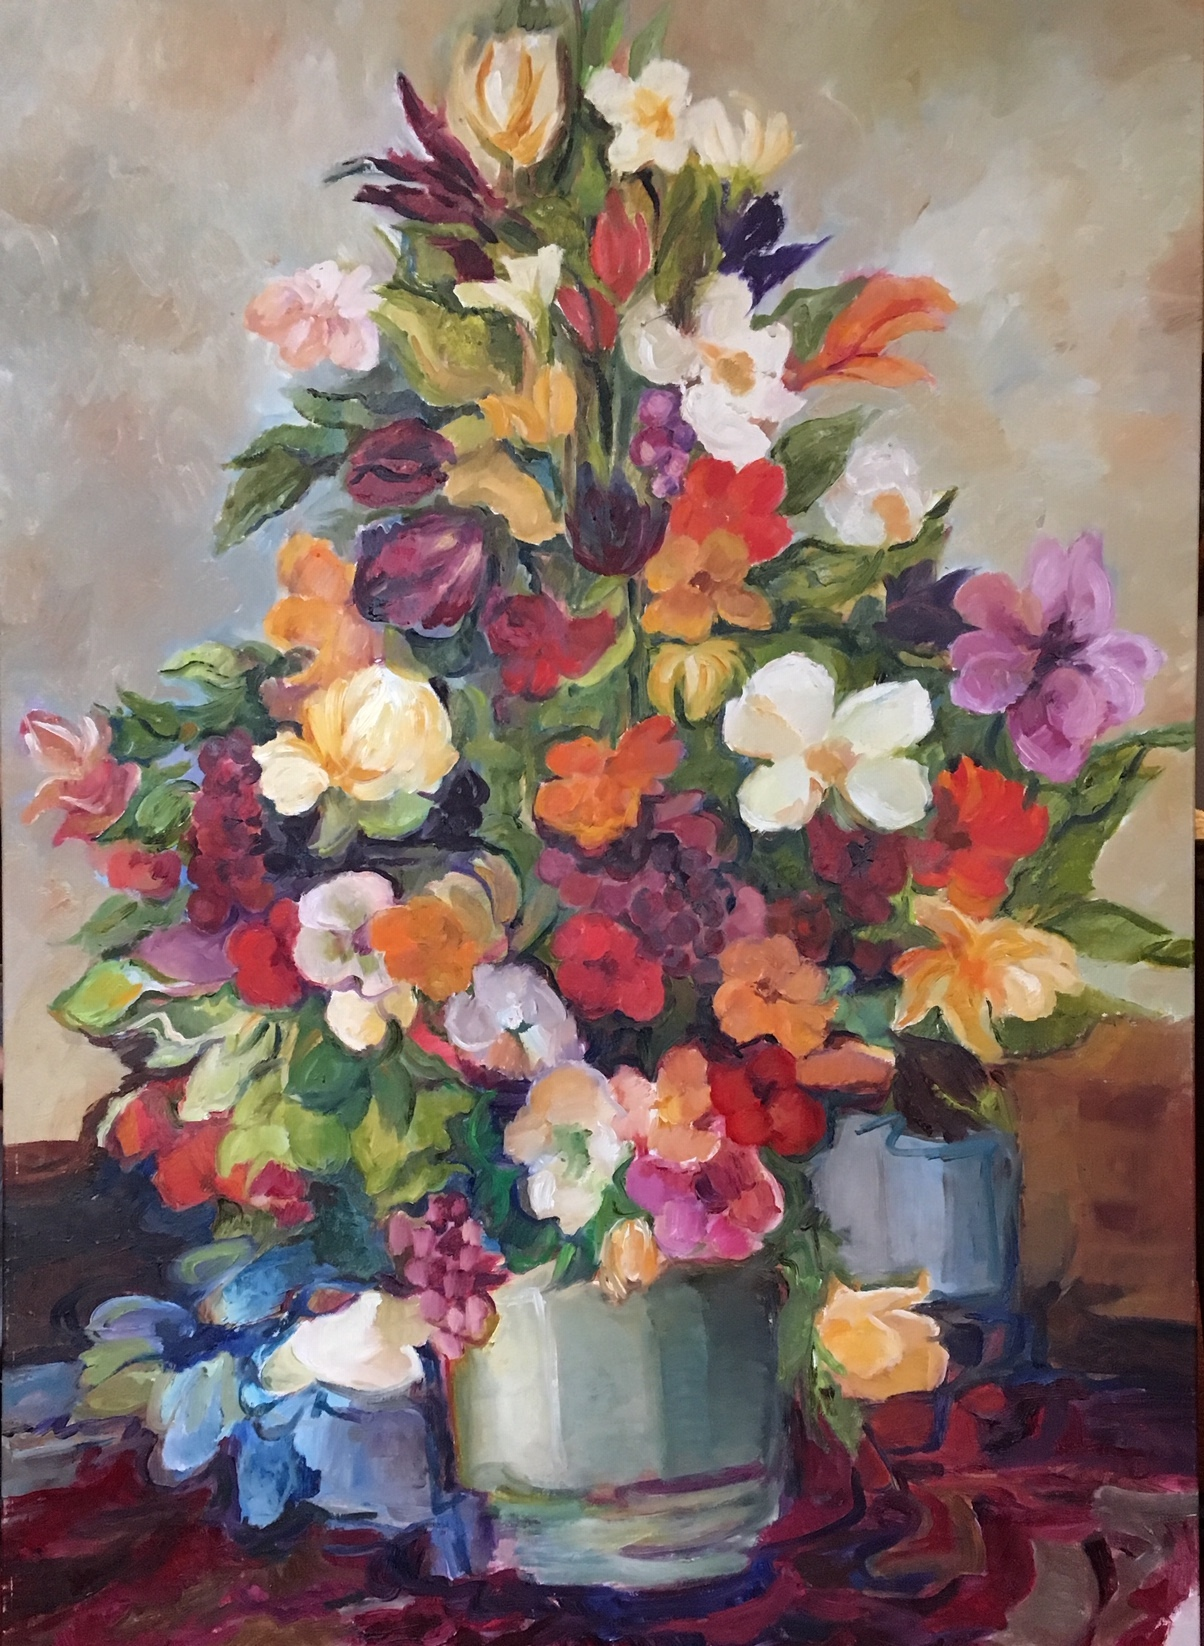 Flower Tower, 48 x 34 inches